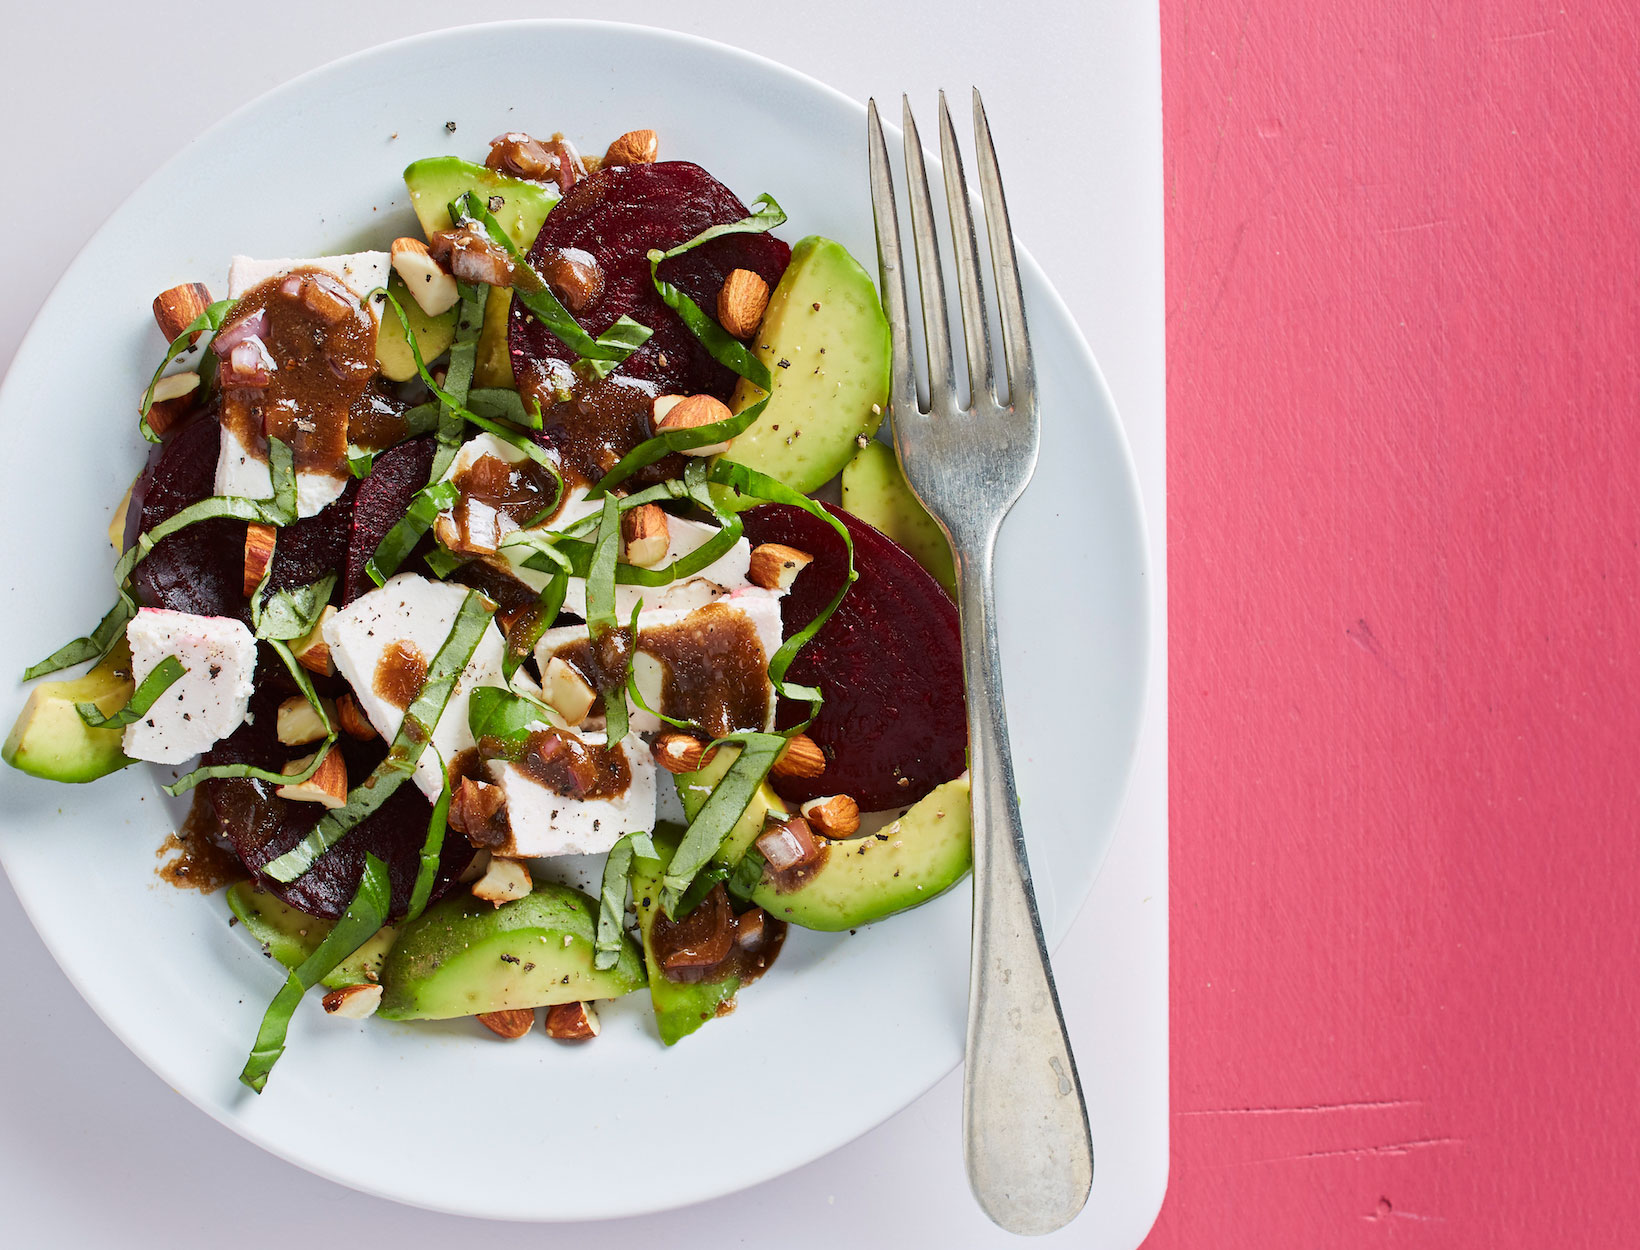 Roasted Beet-Cheese-Basil Caprese with Avocado and Toasted Almonds